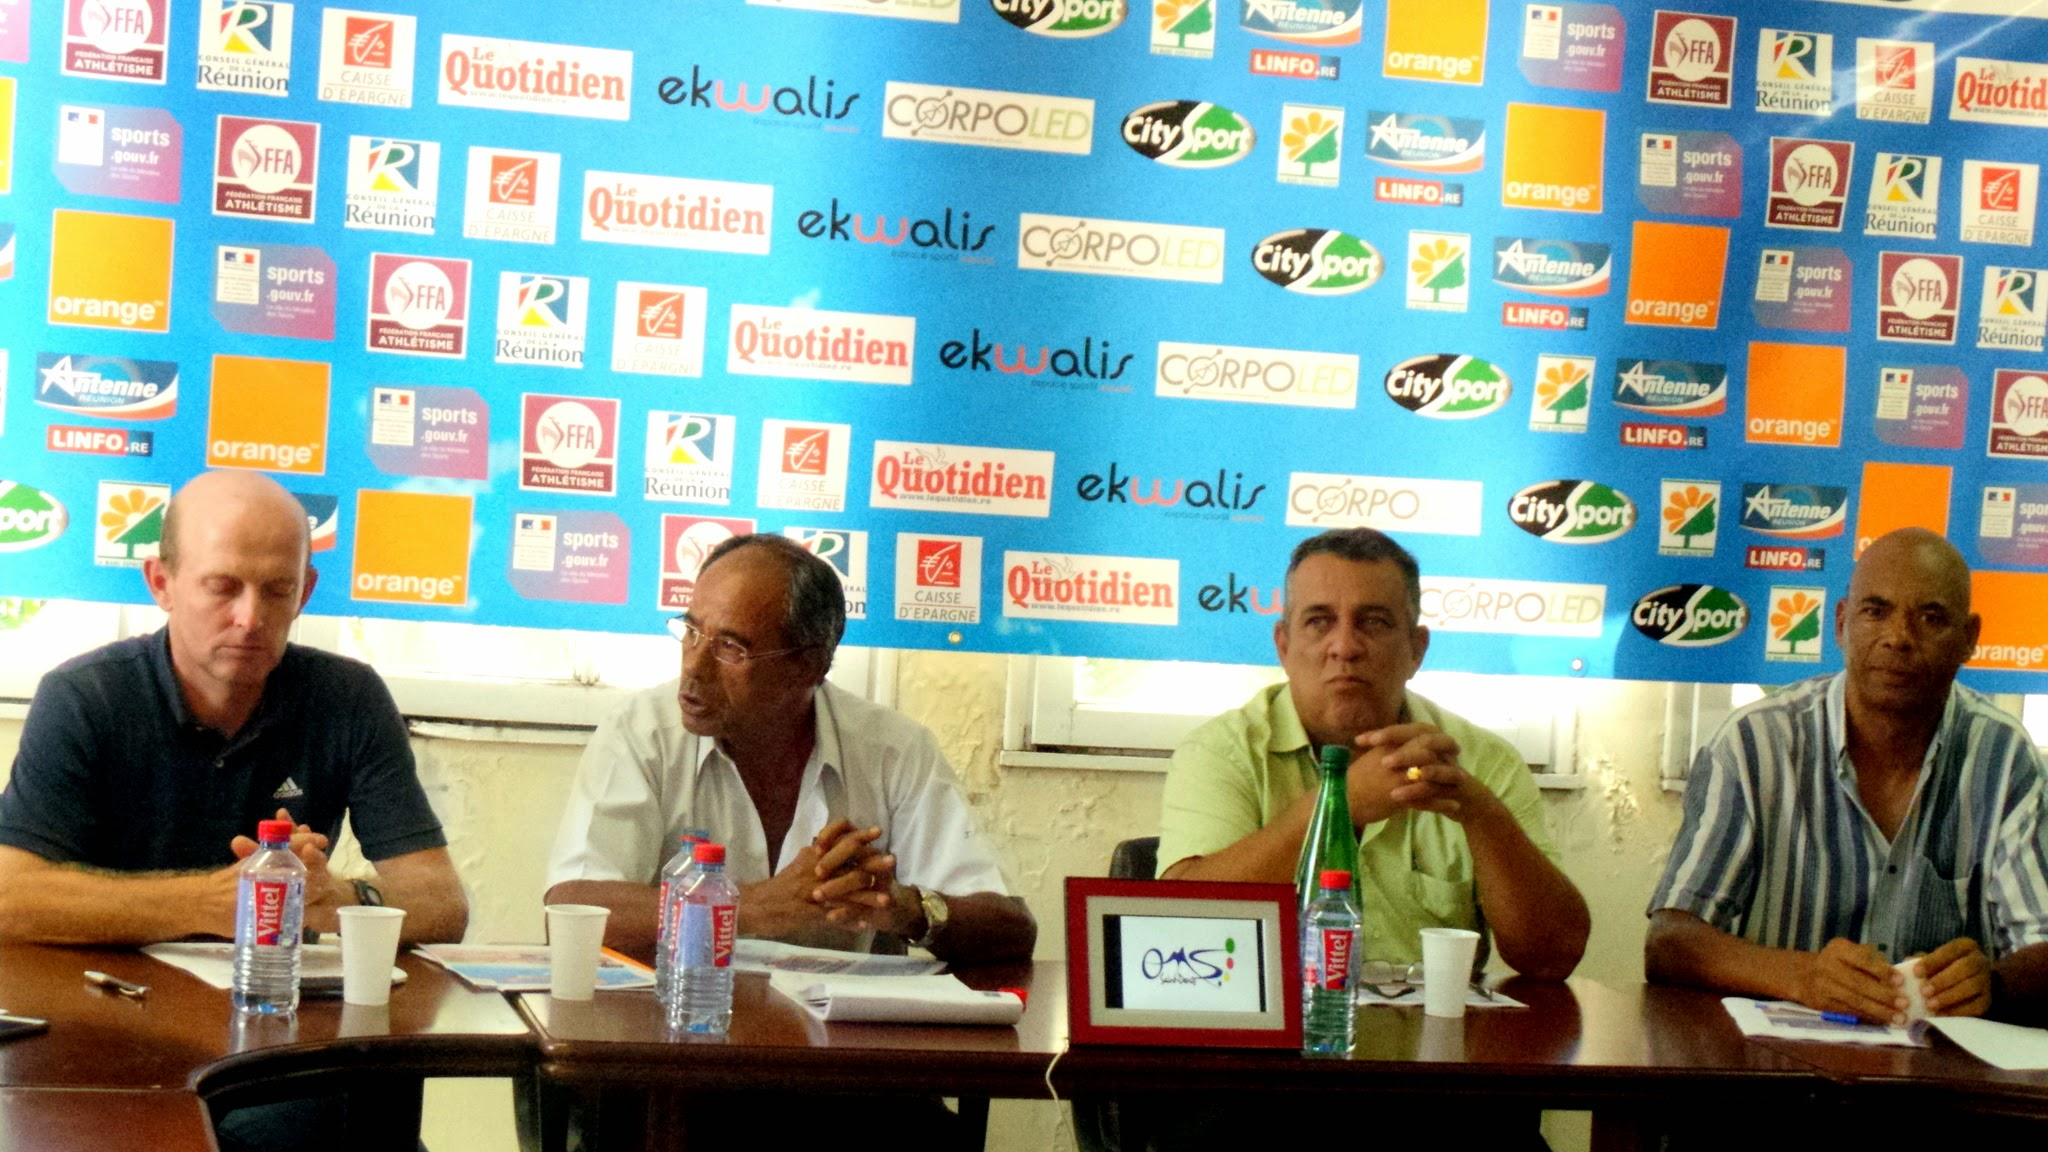 Meeting international d'athlétisme 2015